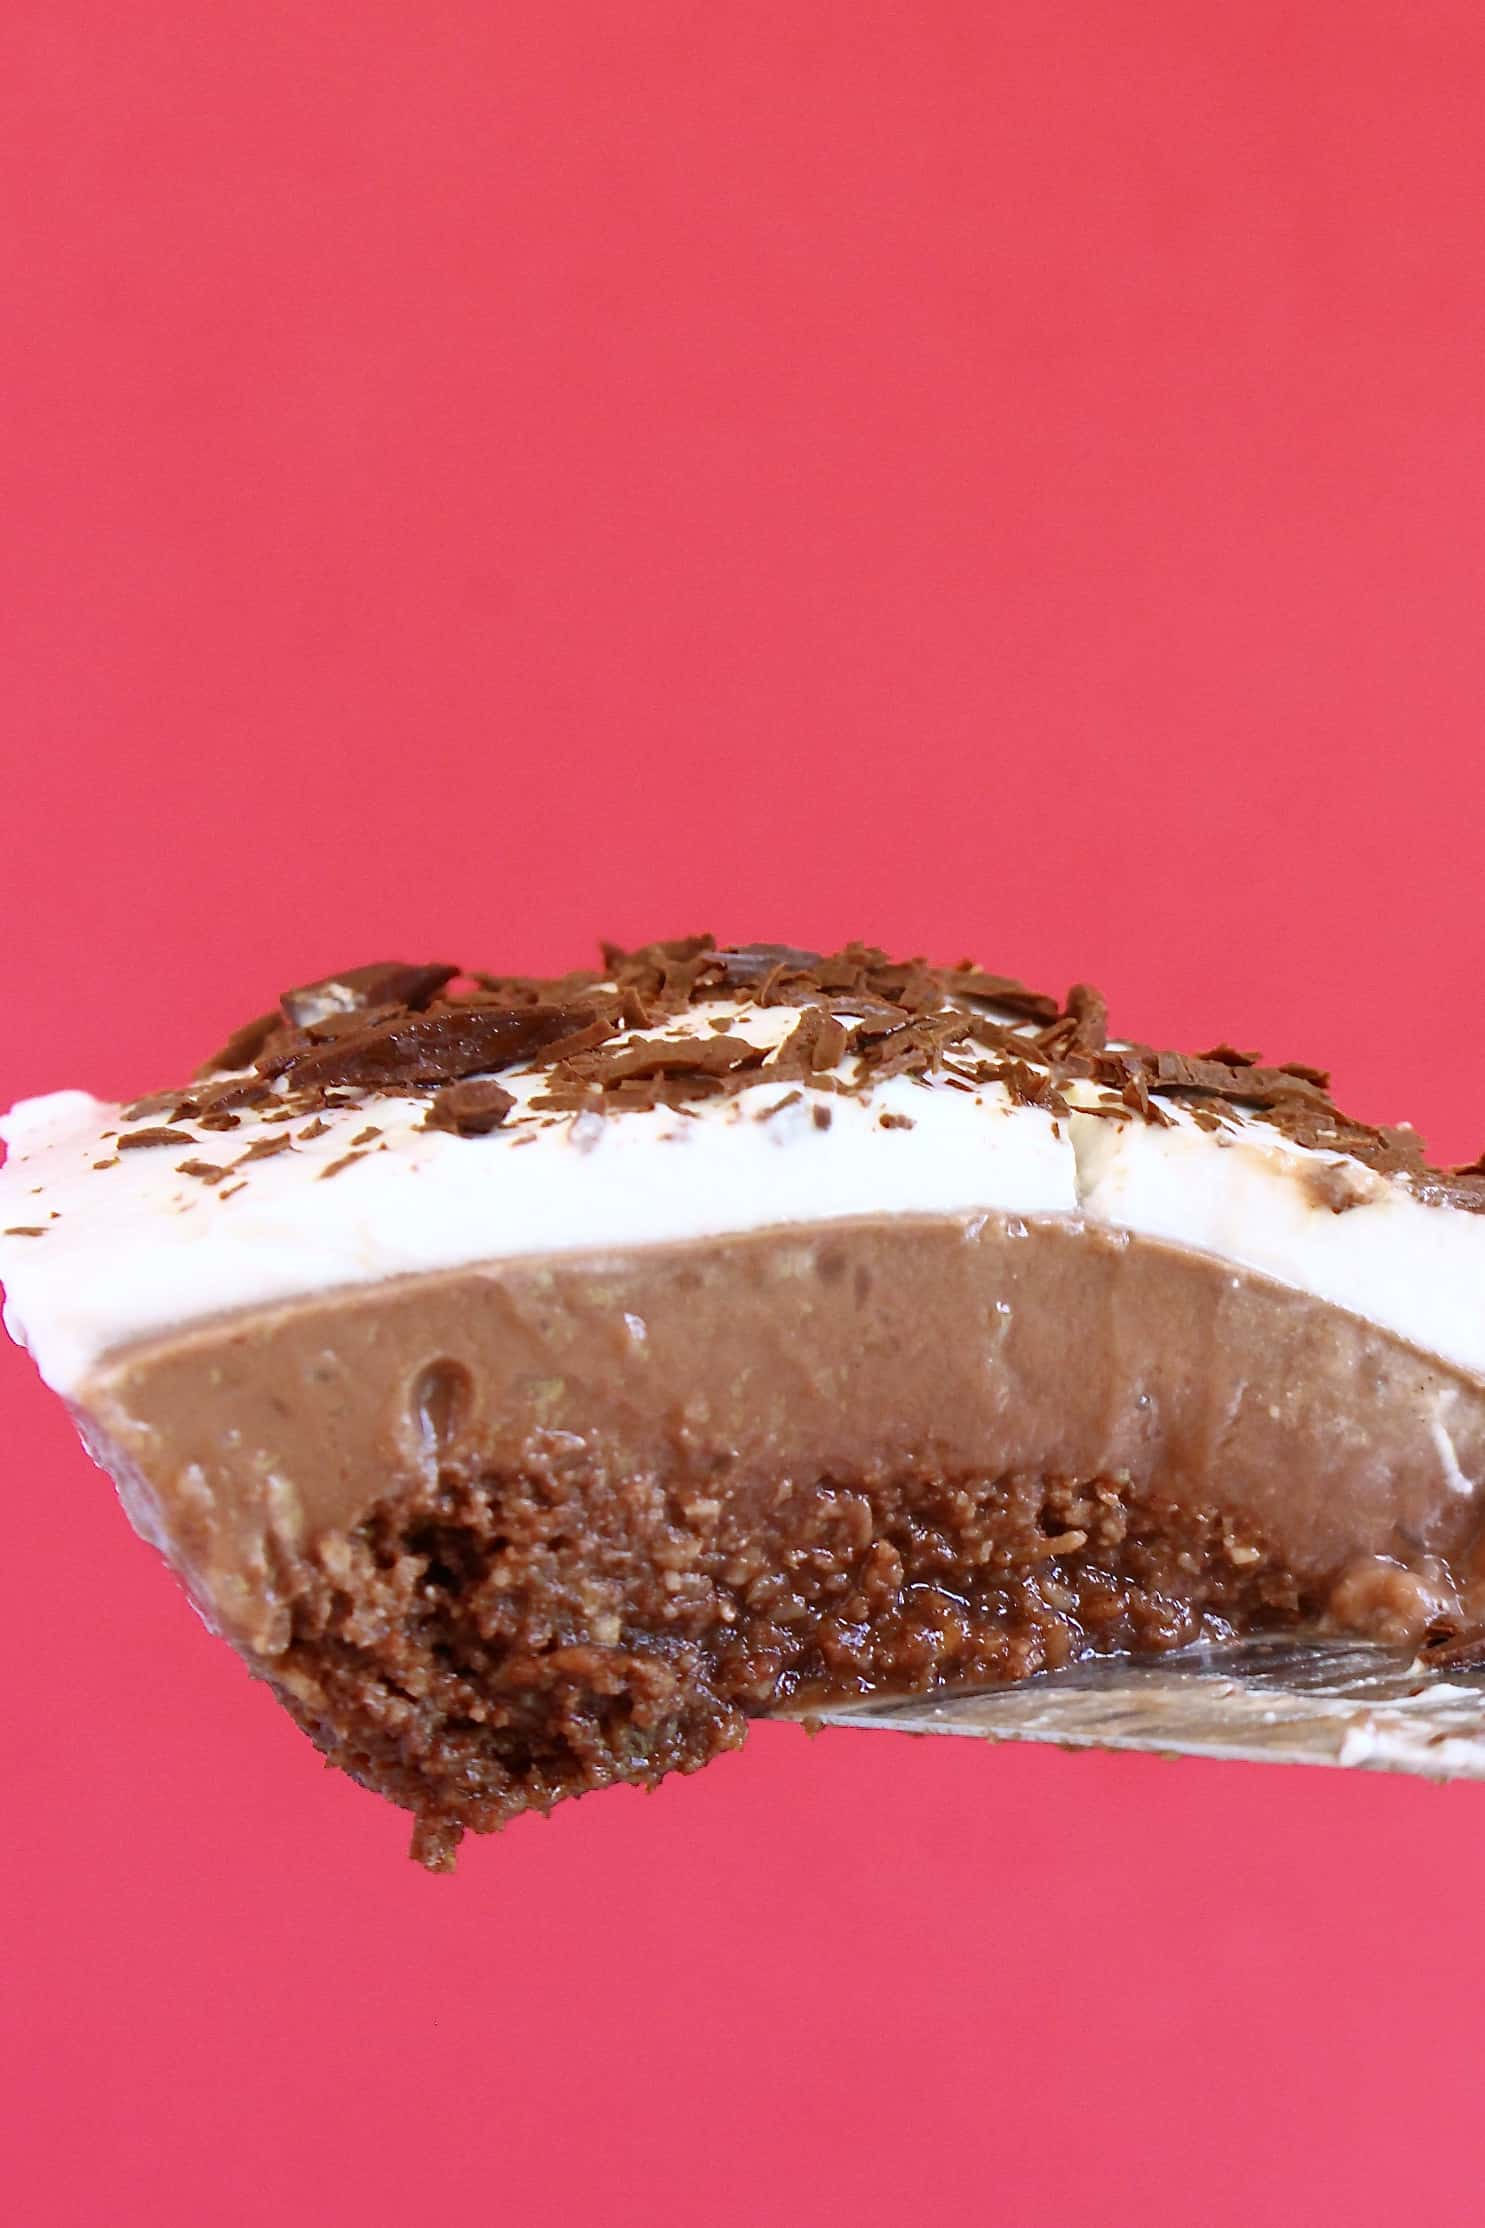 A slice of gluten-free vegan Mississippi mud pie with a chocolate base, chocolate custard and chocolate cream